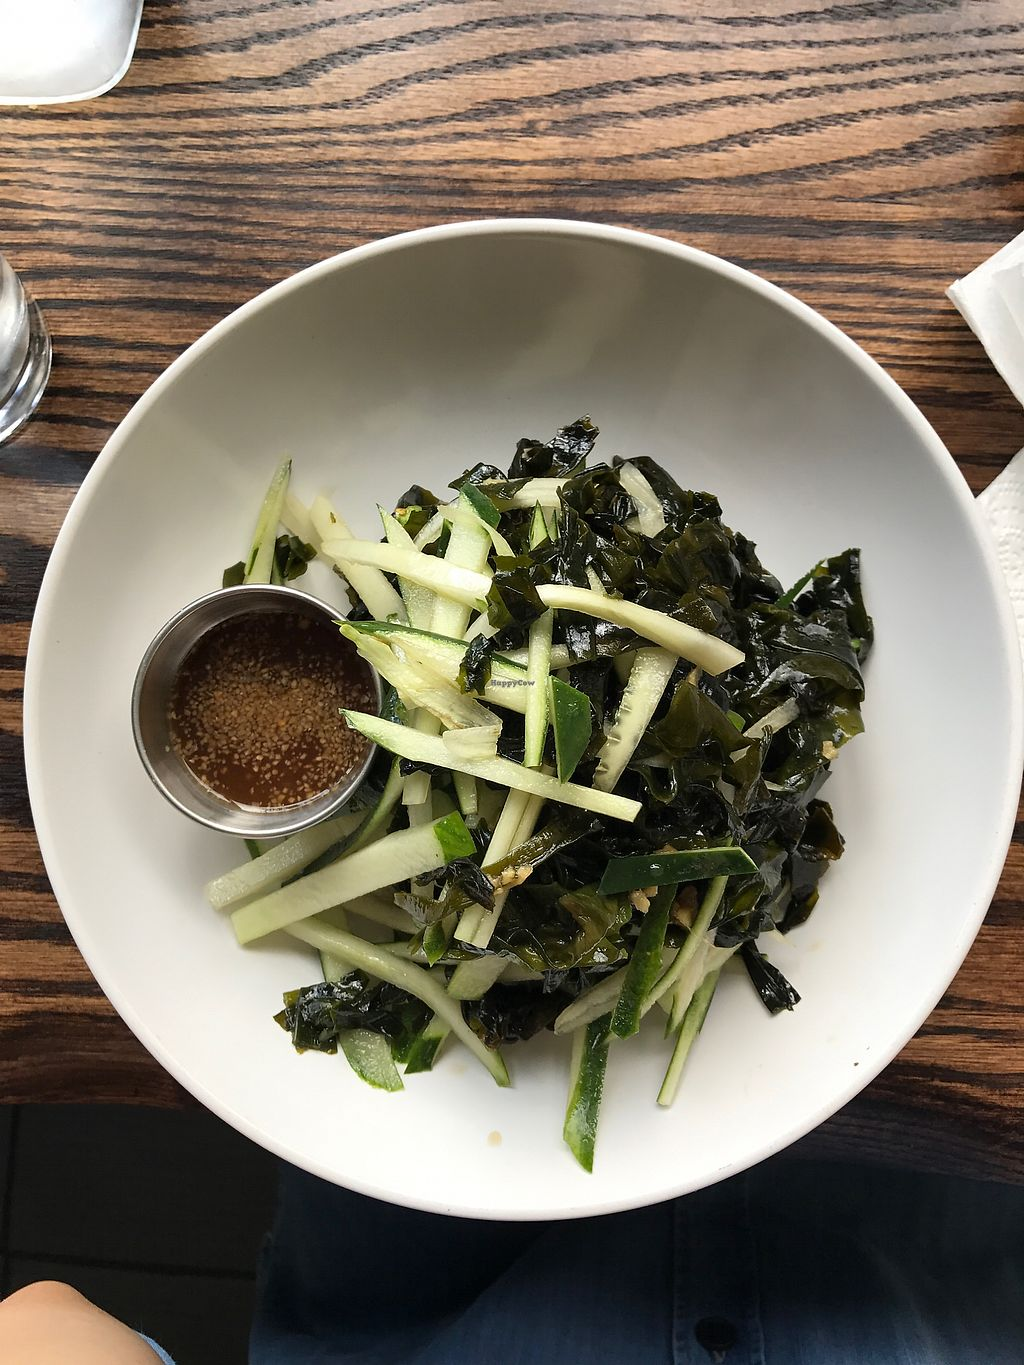 """Photo of Loving Hut - Brooklyn  by <a href=""""/members/profile/Marthadownunder"""">Marthadownunder</a> <br/>Seaweed and Cucumber salad <br/> July 2, 2017  - <a href='/contact/abuse/image/40374/276122'>Report</a>"""